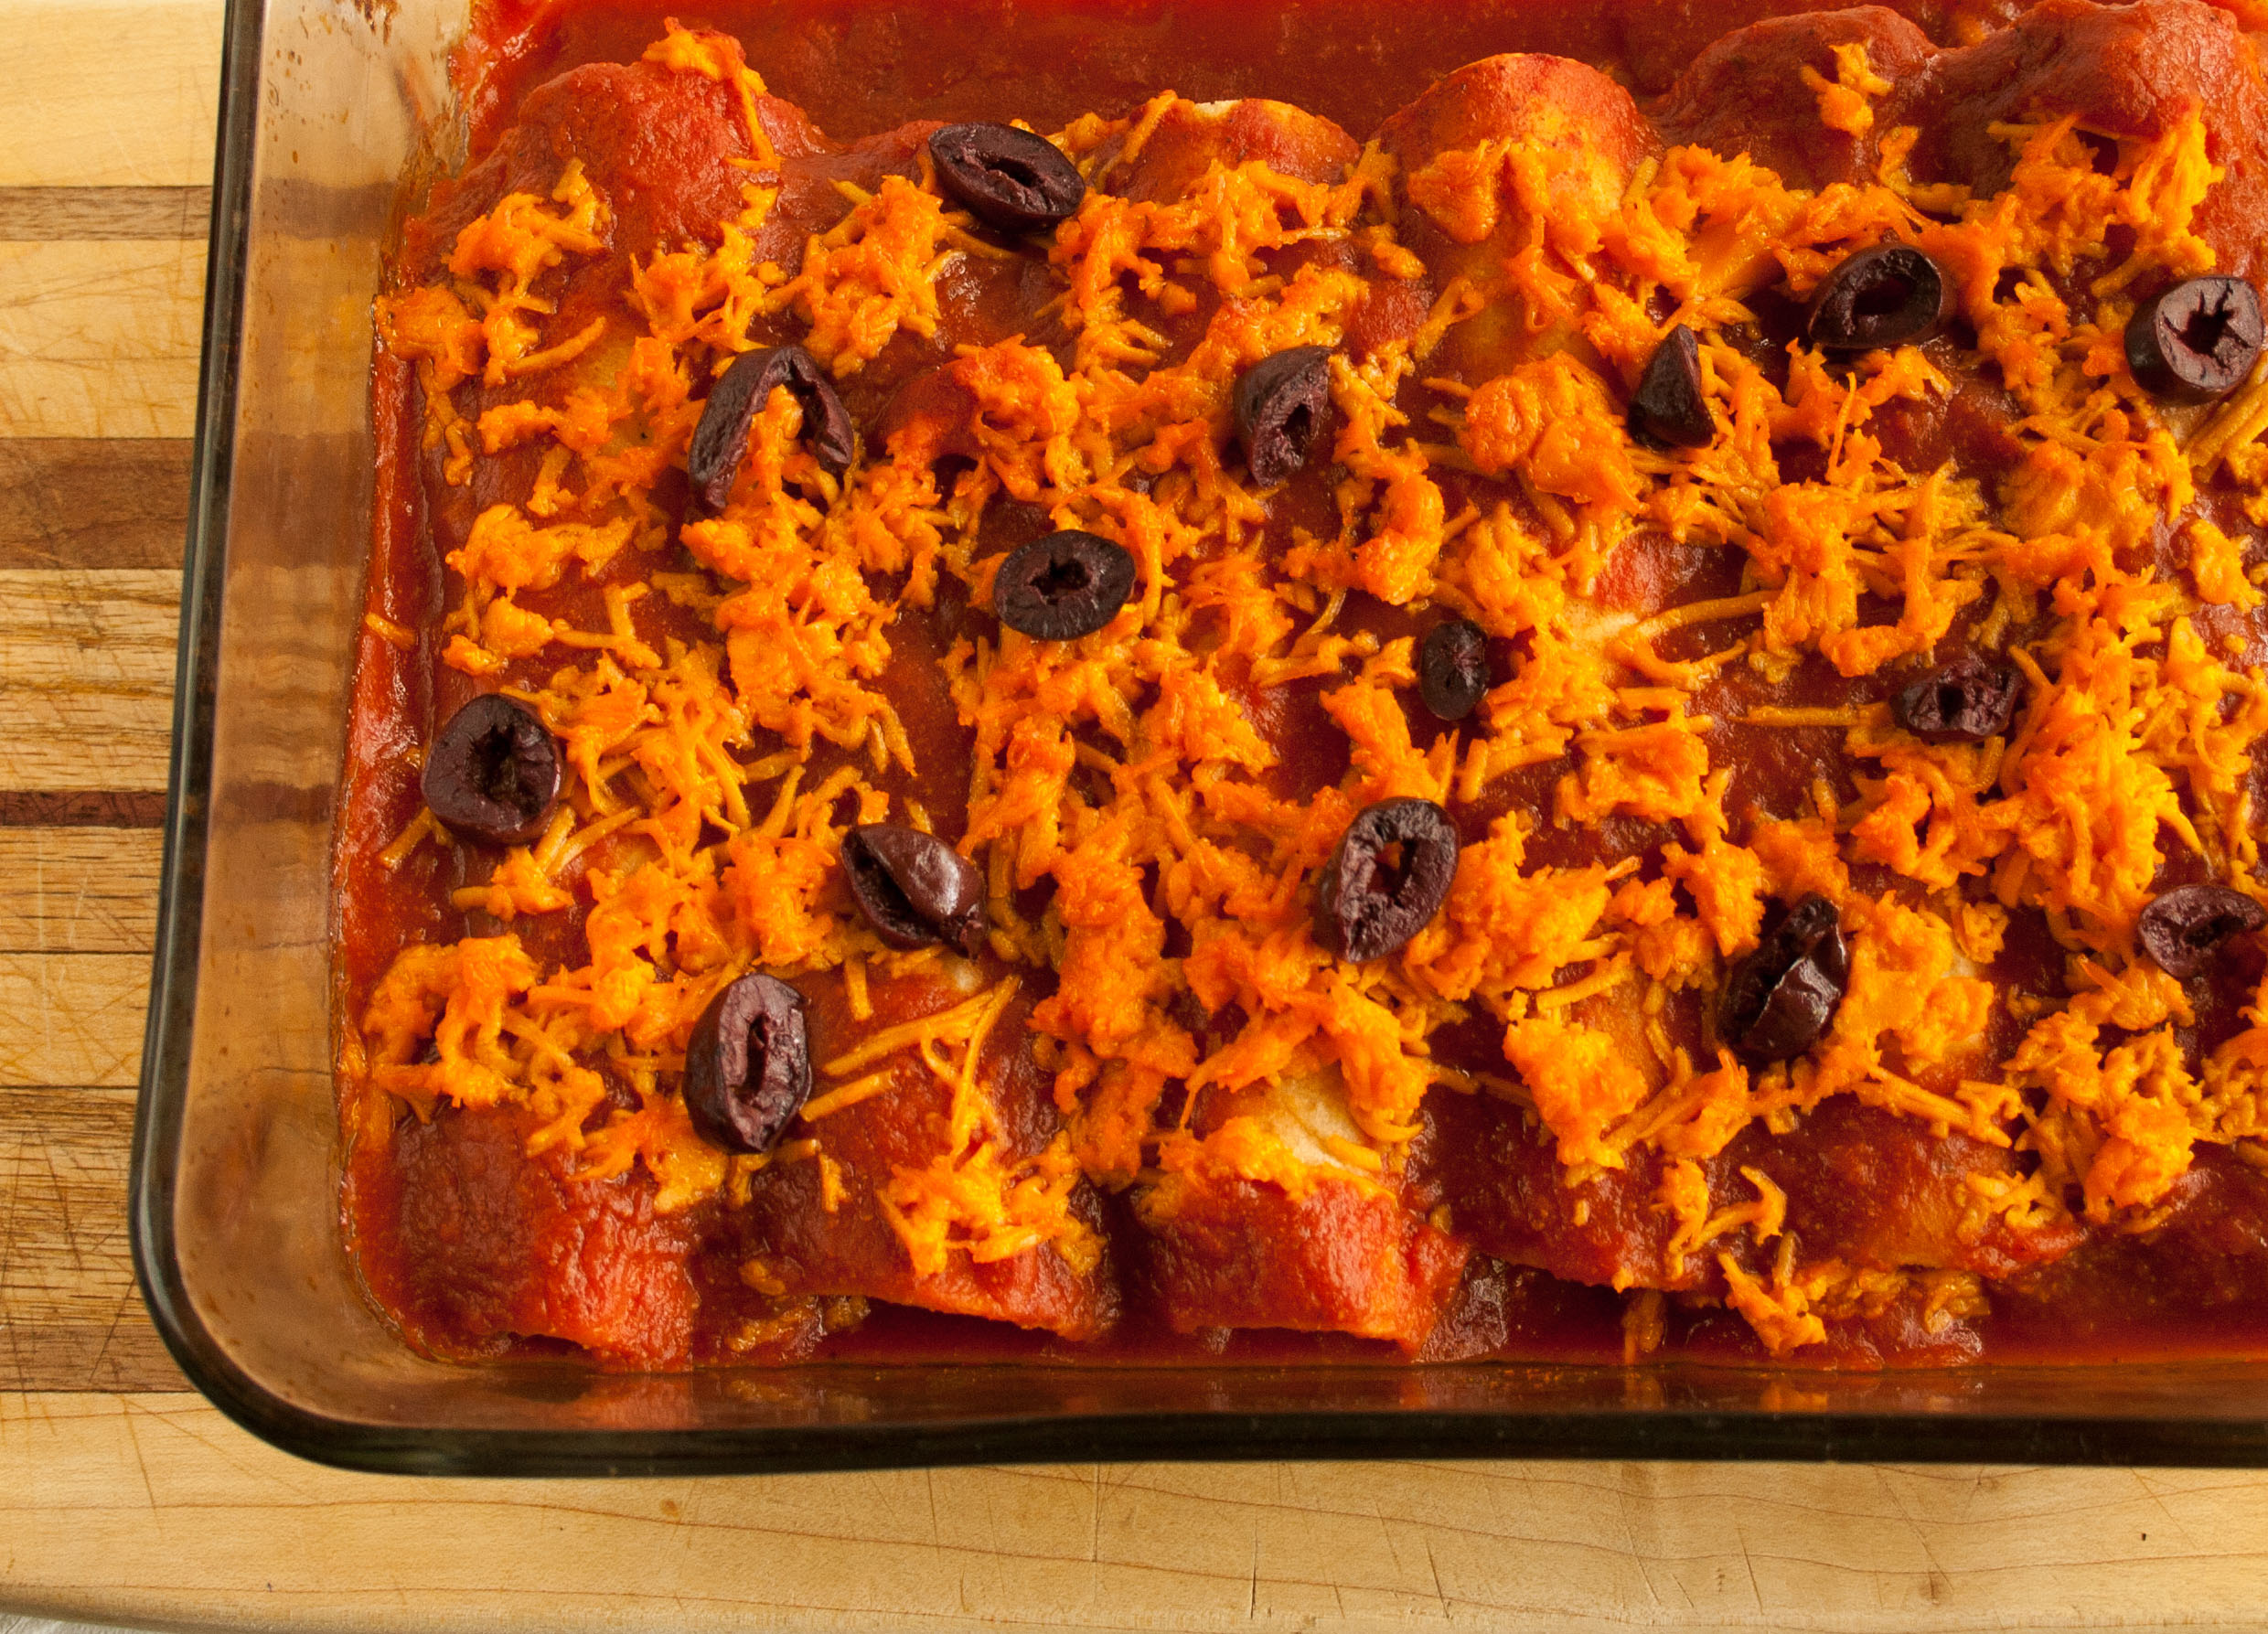 Jackfruit Enchiladas birds eye view of enchiladas in baking dish.